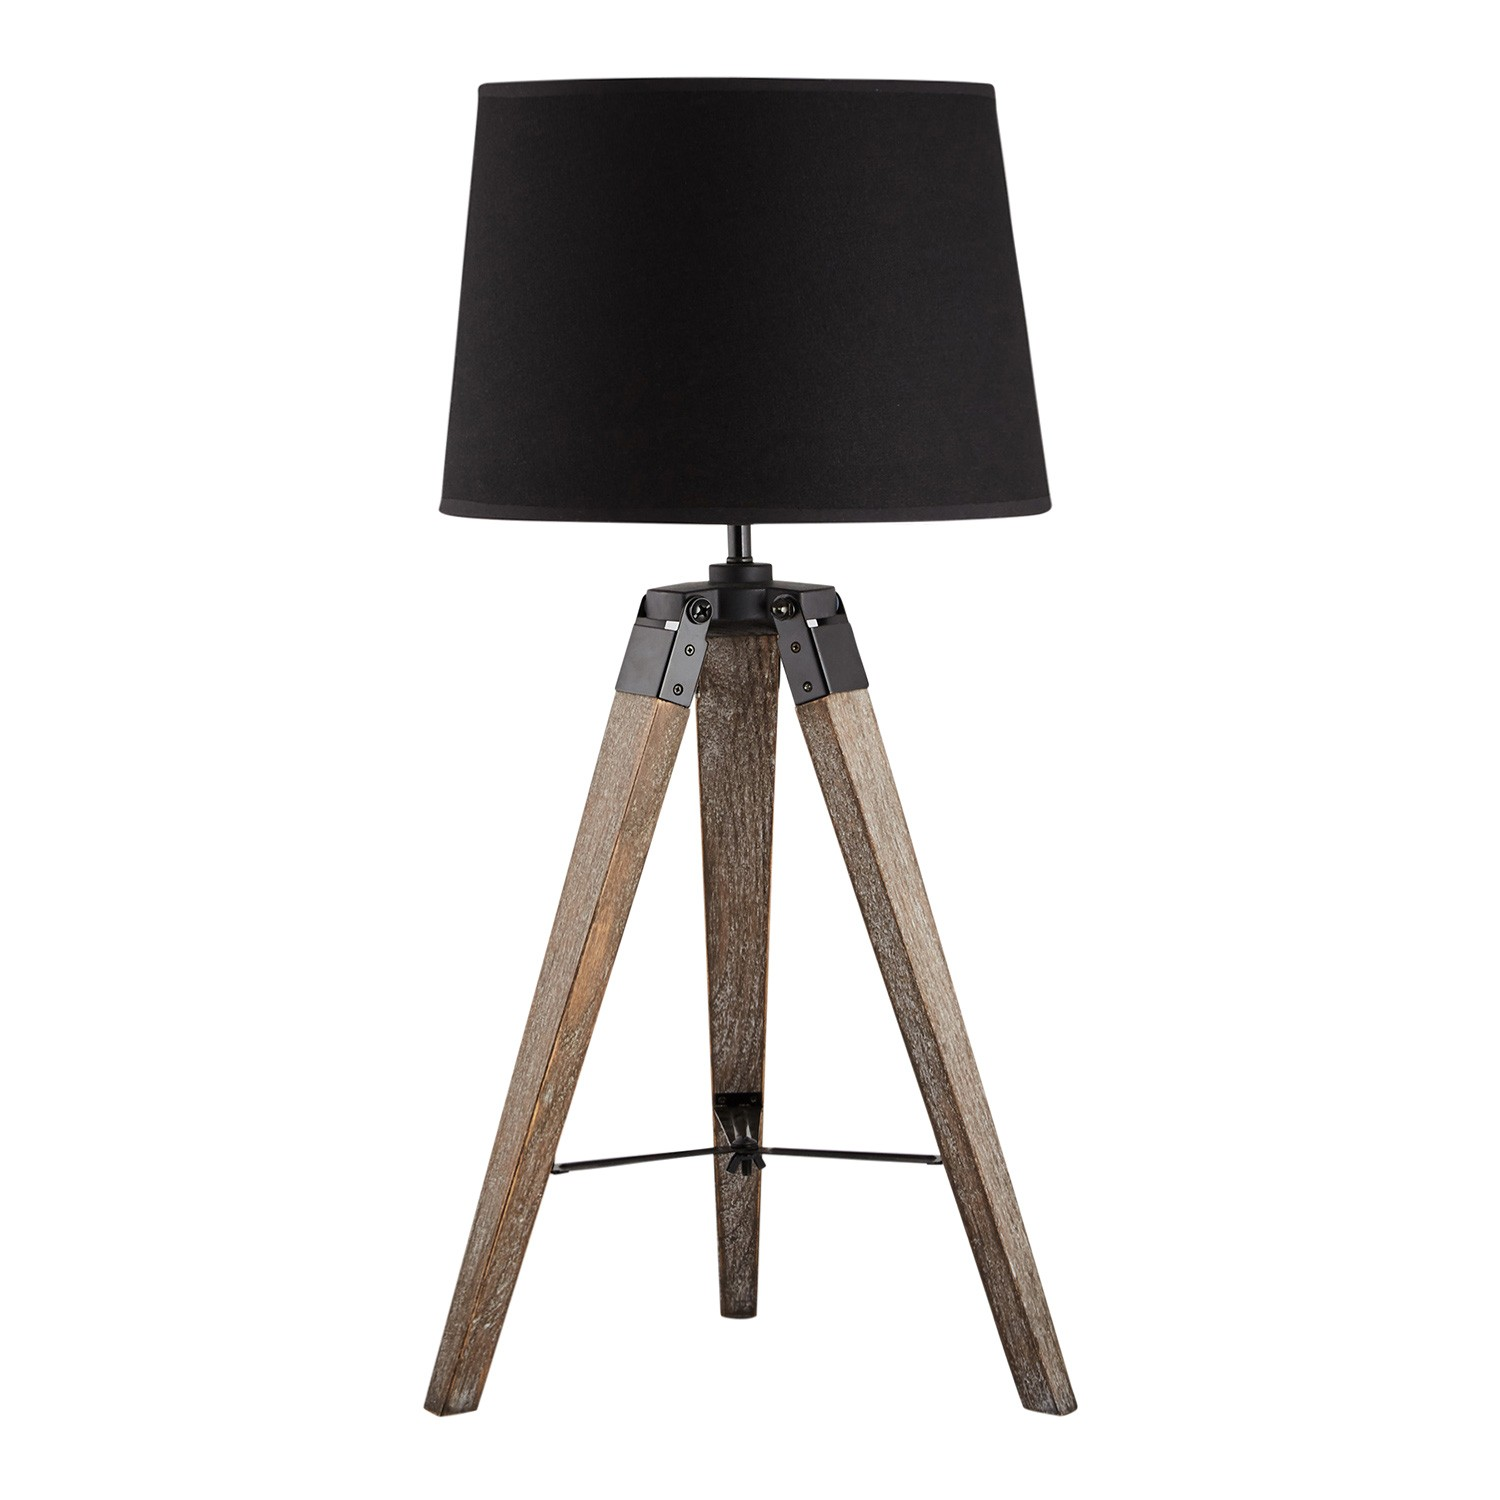 Surveyor Classic Timber Tripod Table Lamp, Dark Oak / Black